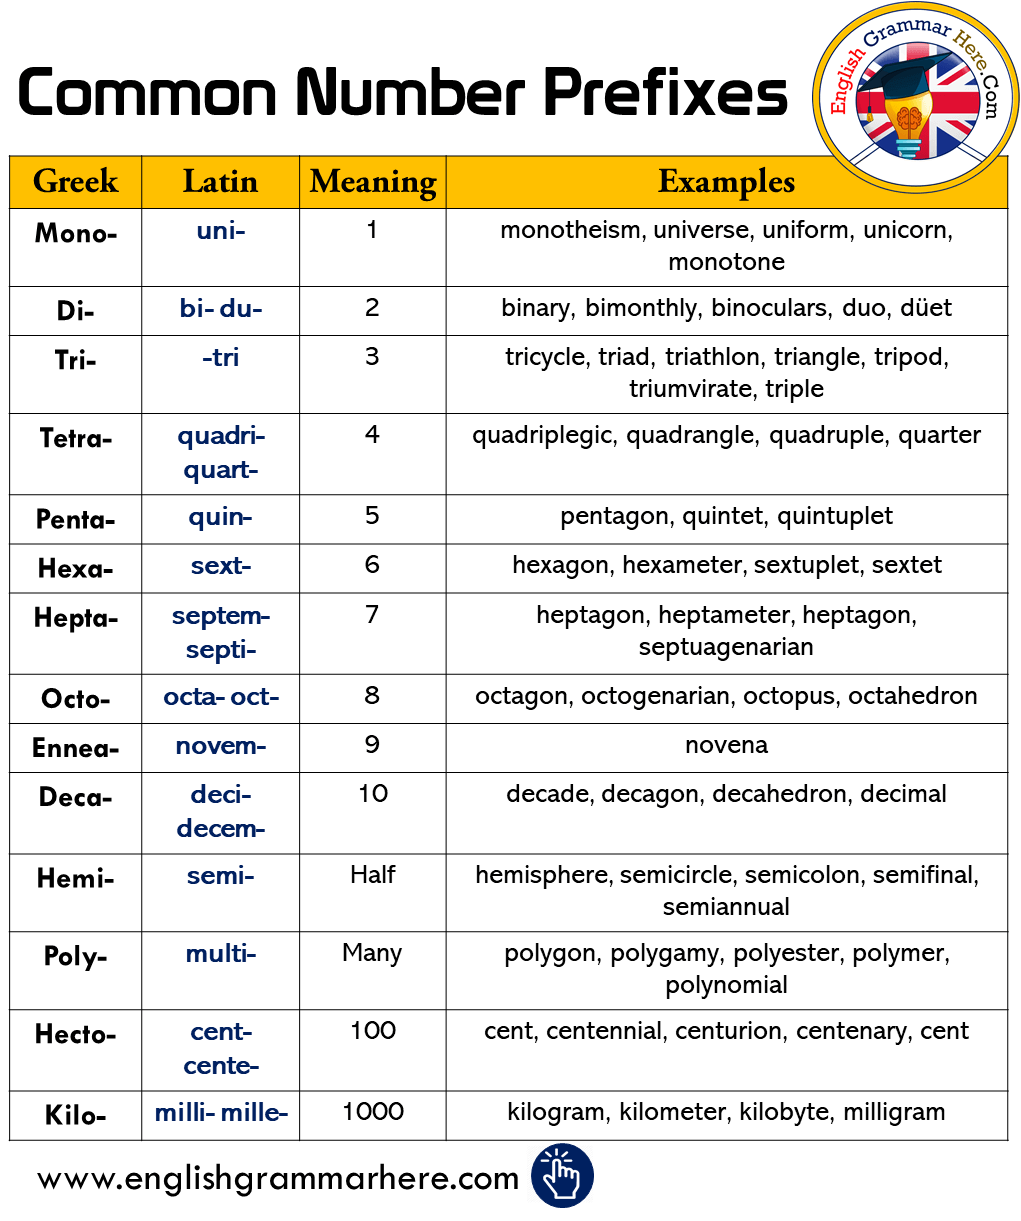 English Common Number Prefixes, Meanings and Examples